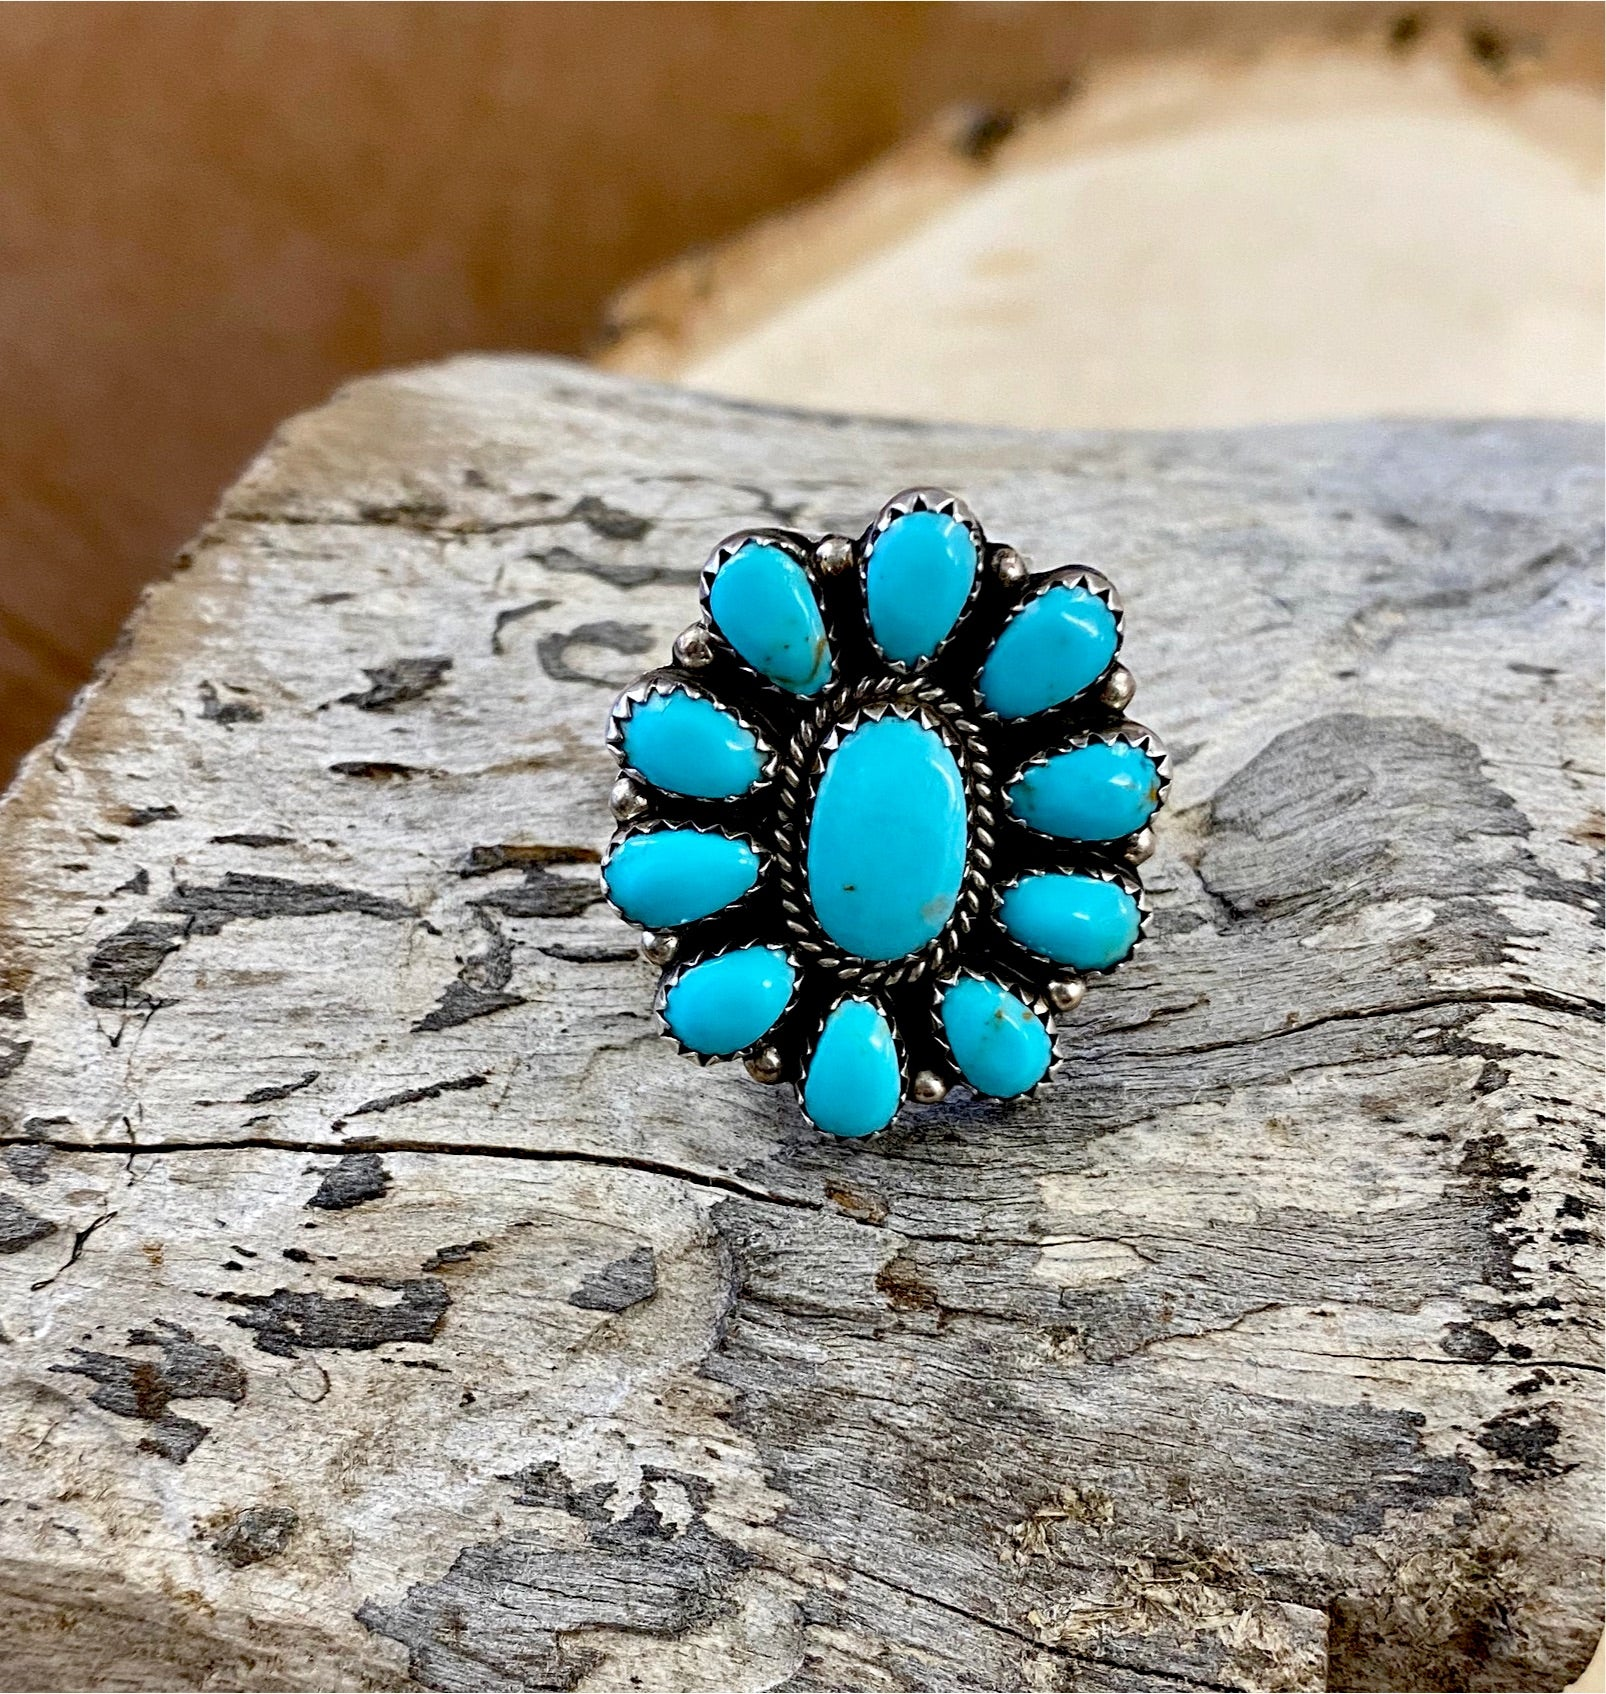 The Lovelett Turquoise Cluster Ring - Ny Texas Style Boutique